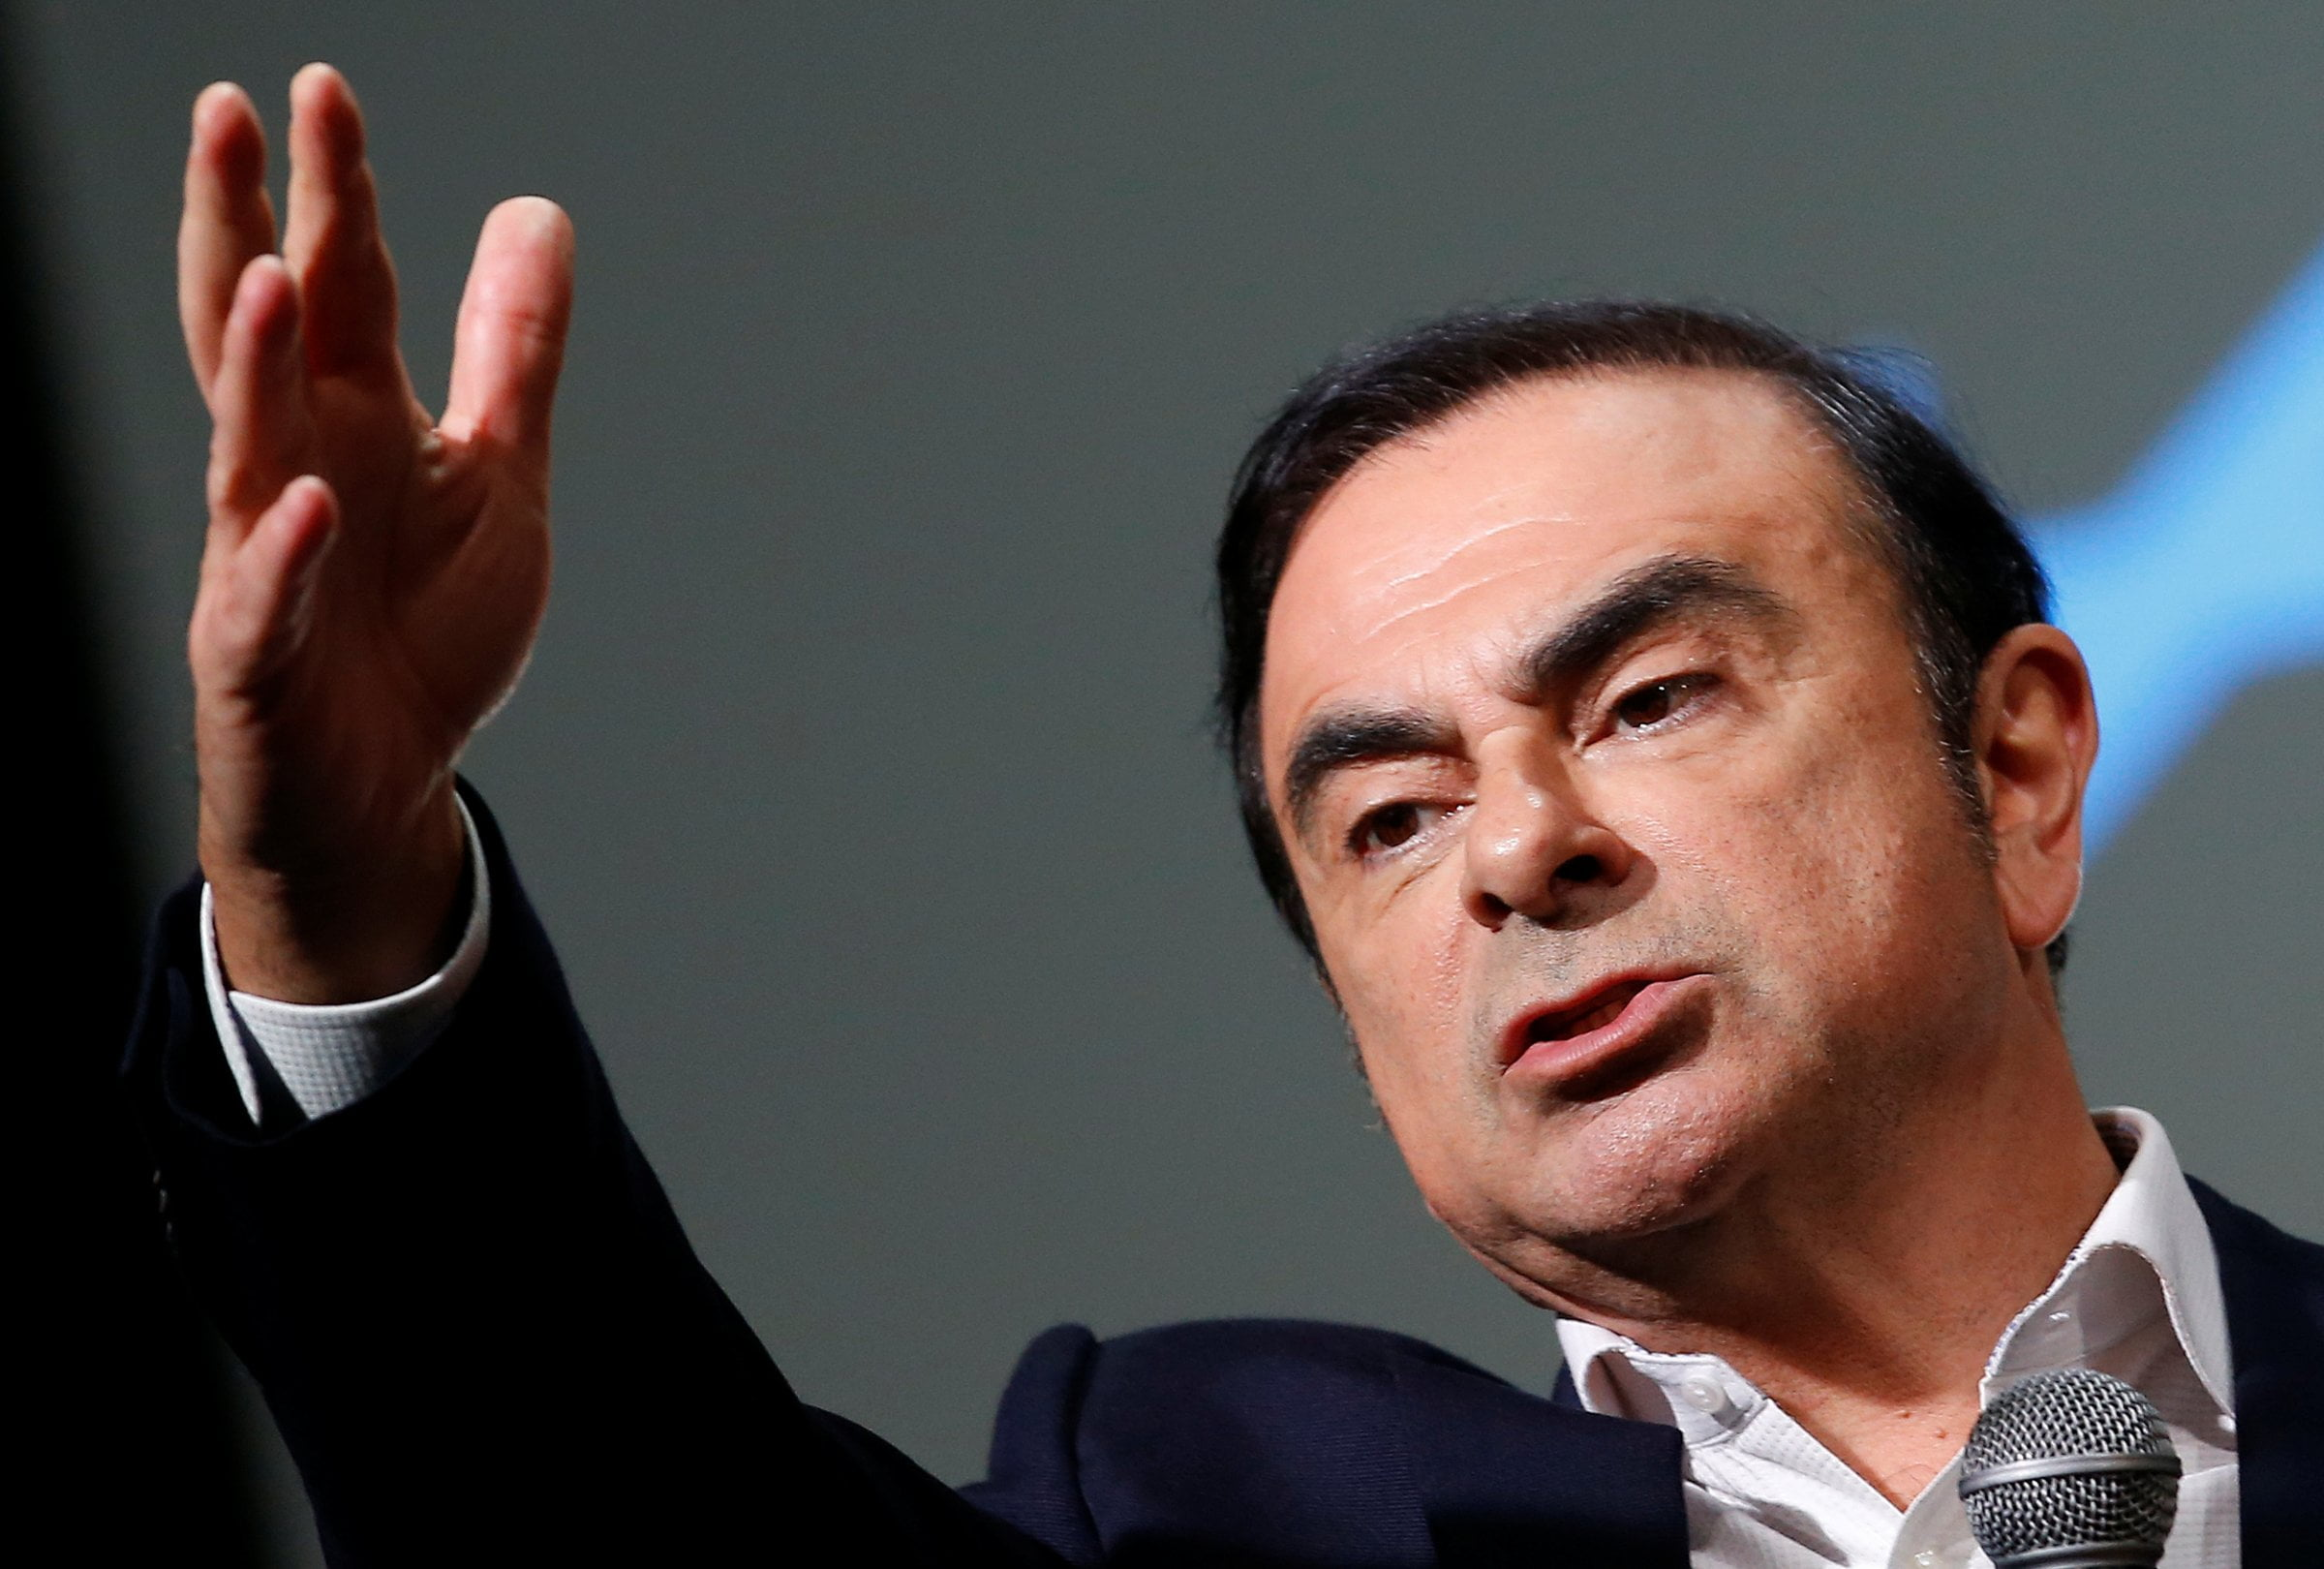 FILE PHOTO - Carlos Ghosn, Chairman and CEO of the Renault-Nissan Alliance, gestures as he speaks during the presentation of the Renault's new Alpine sports concept car